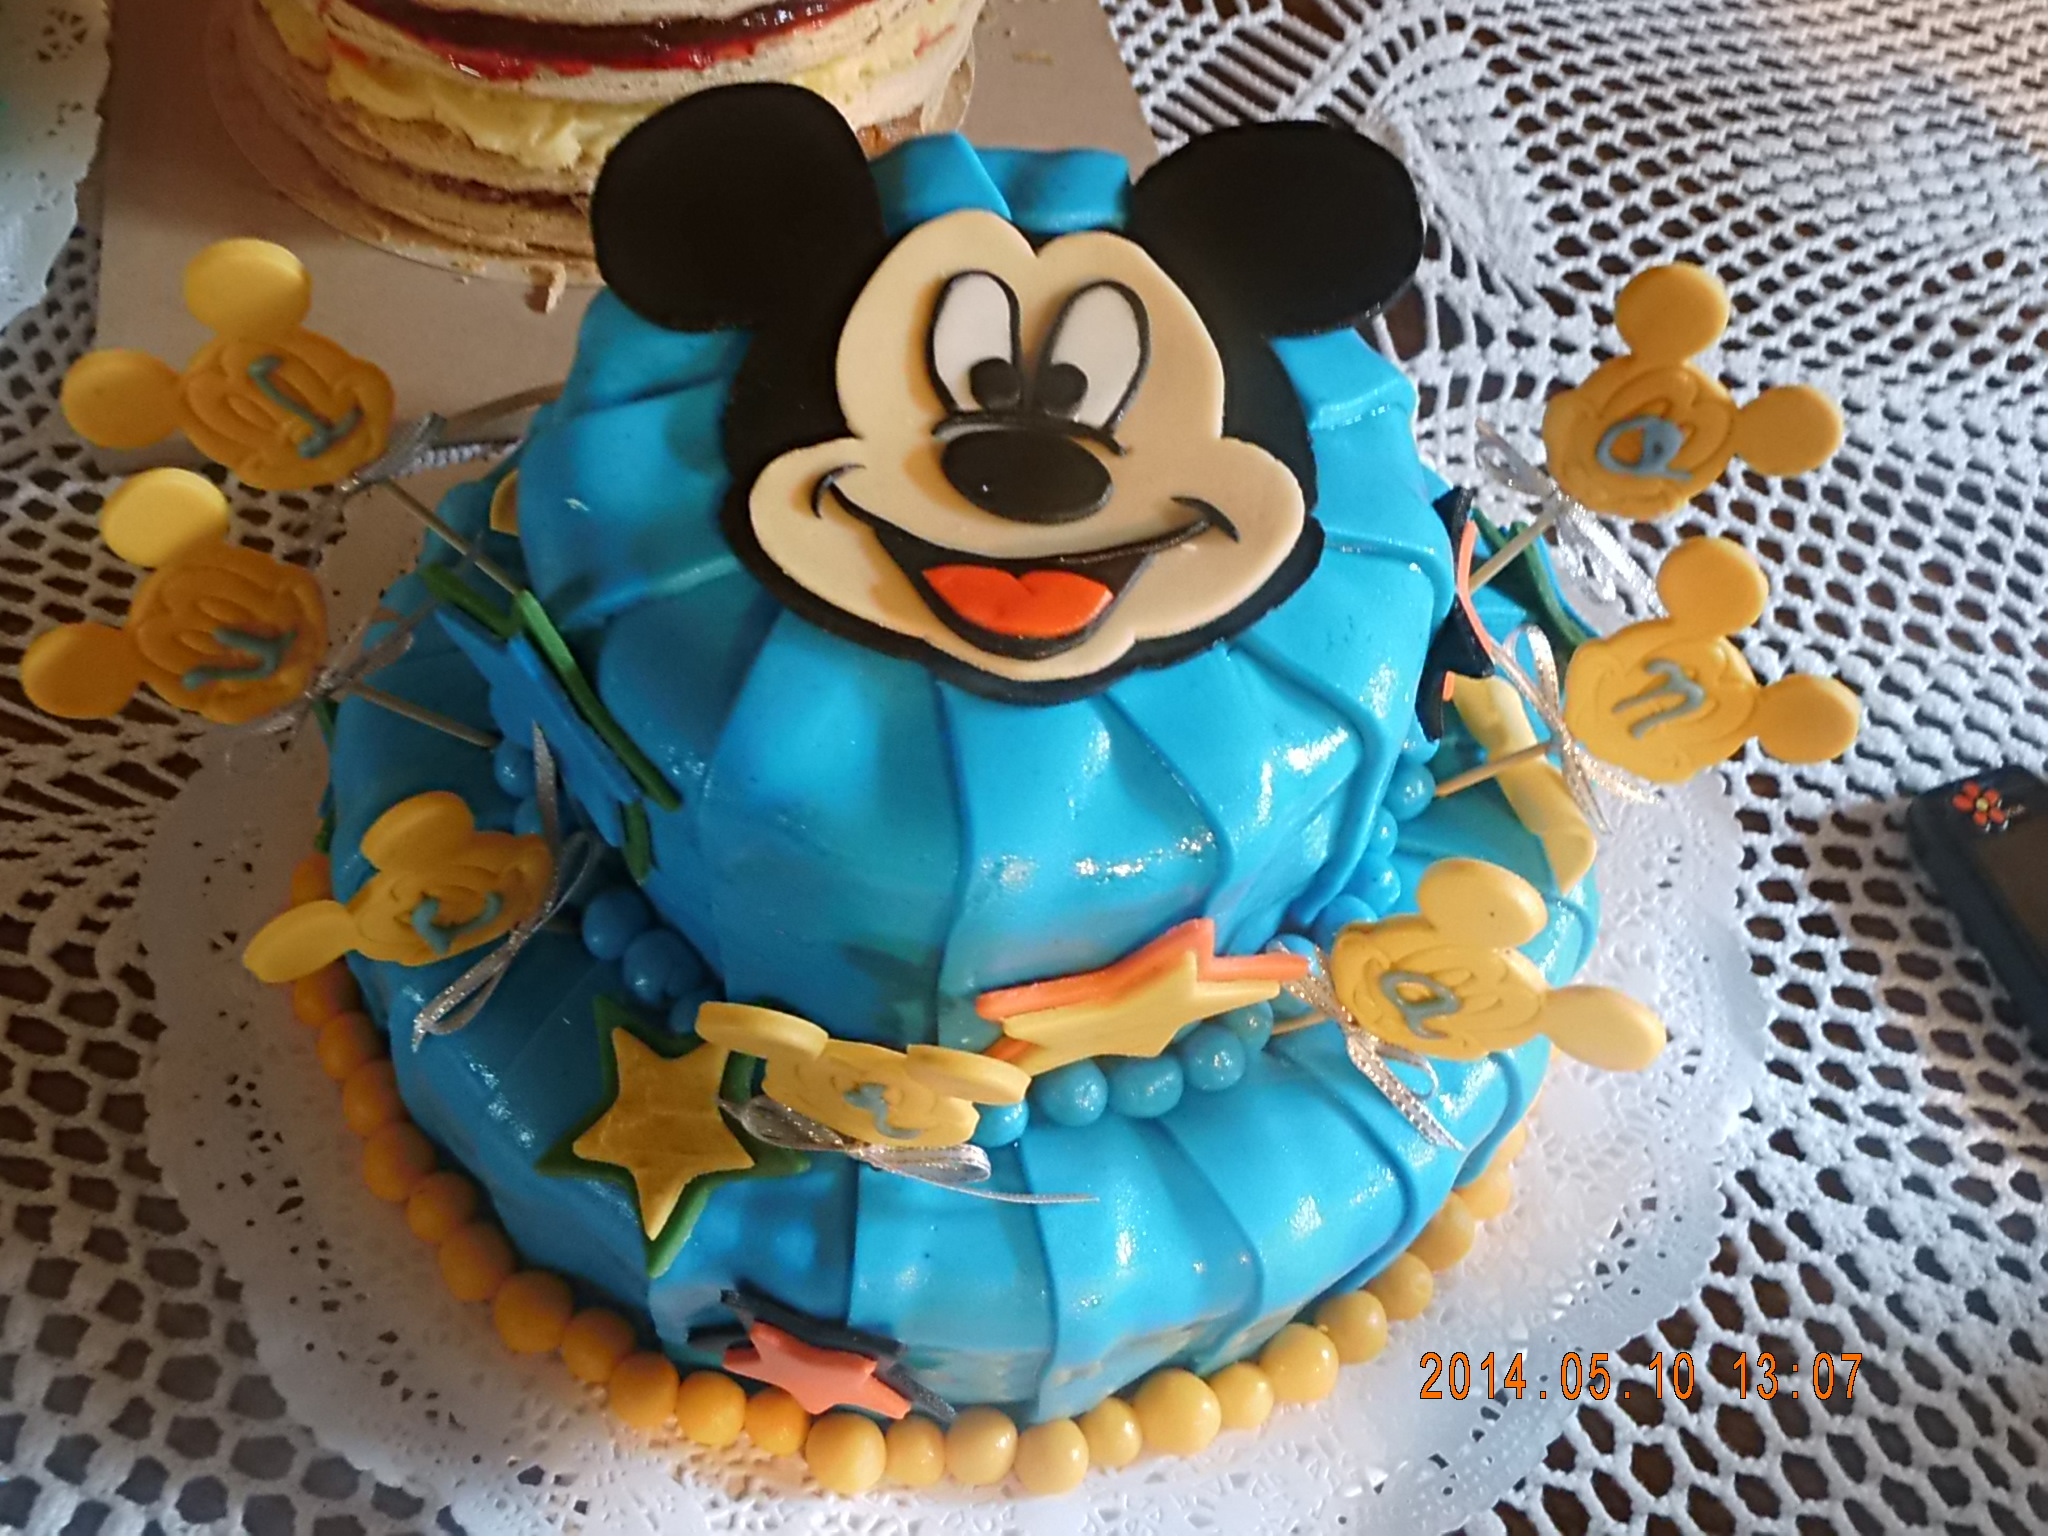 Mickey mouse plizada